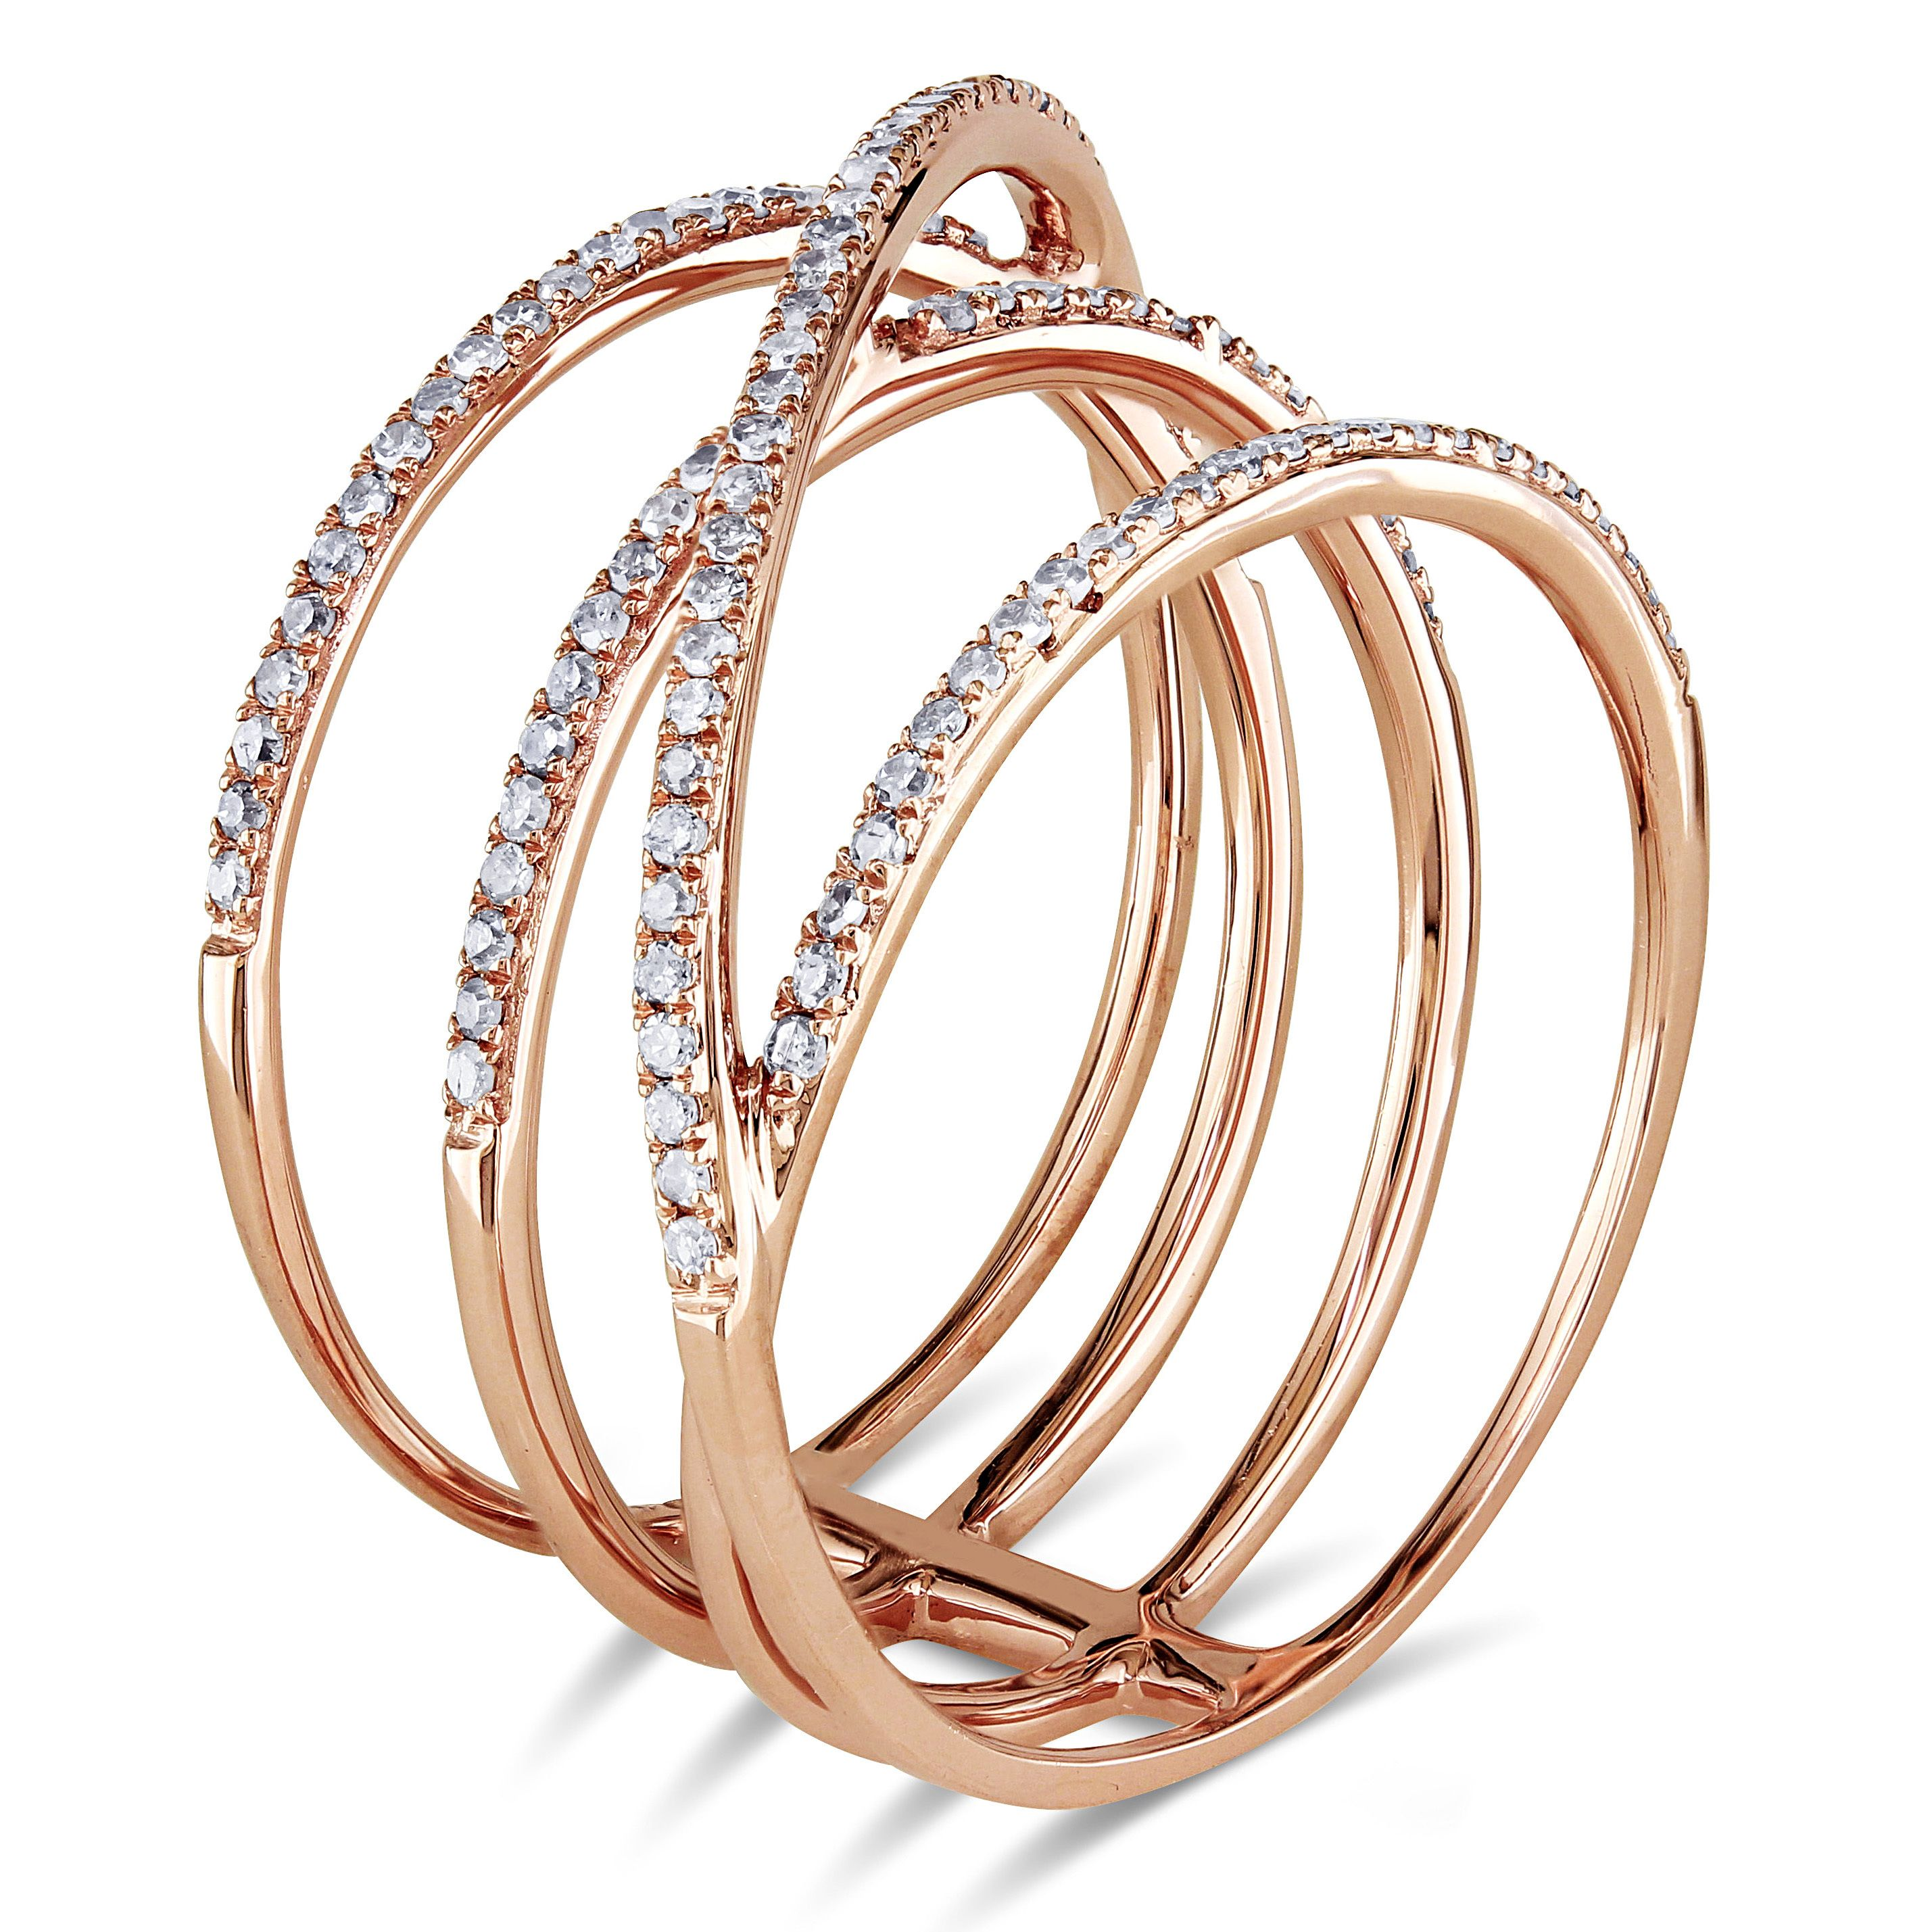 liRound white diamond crisscross ringli li14karat rose gold